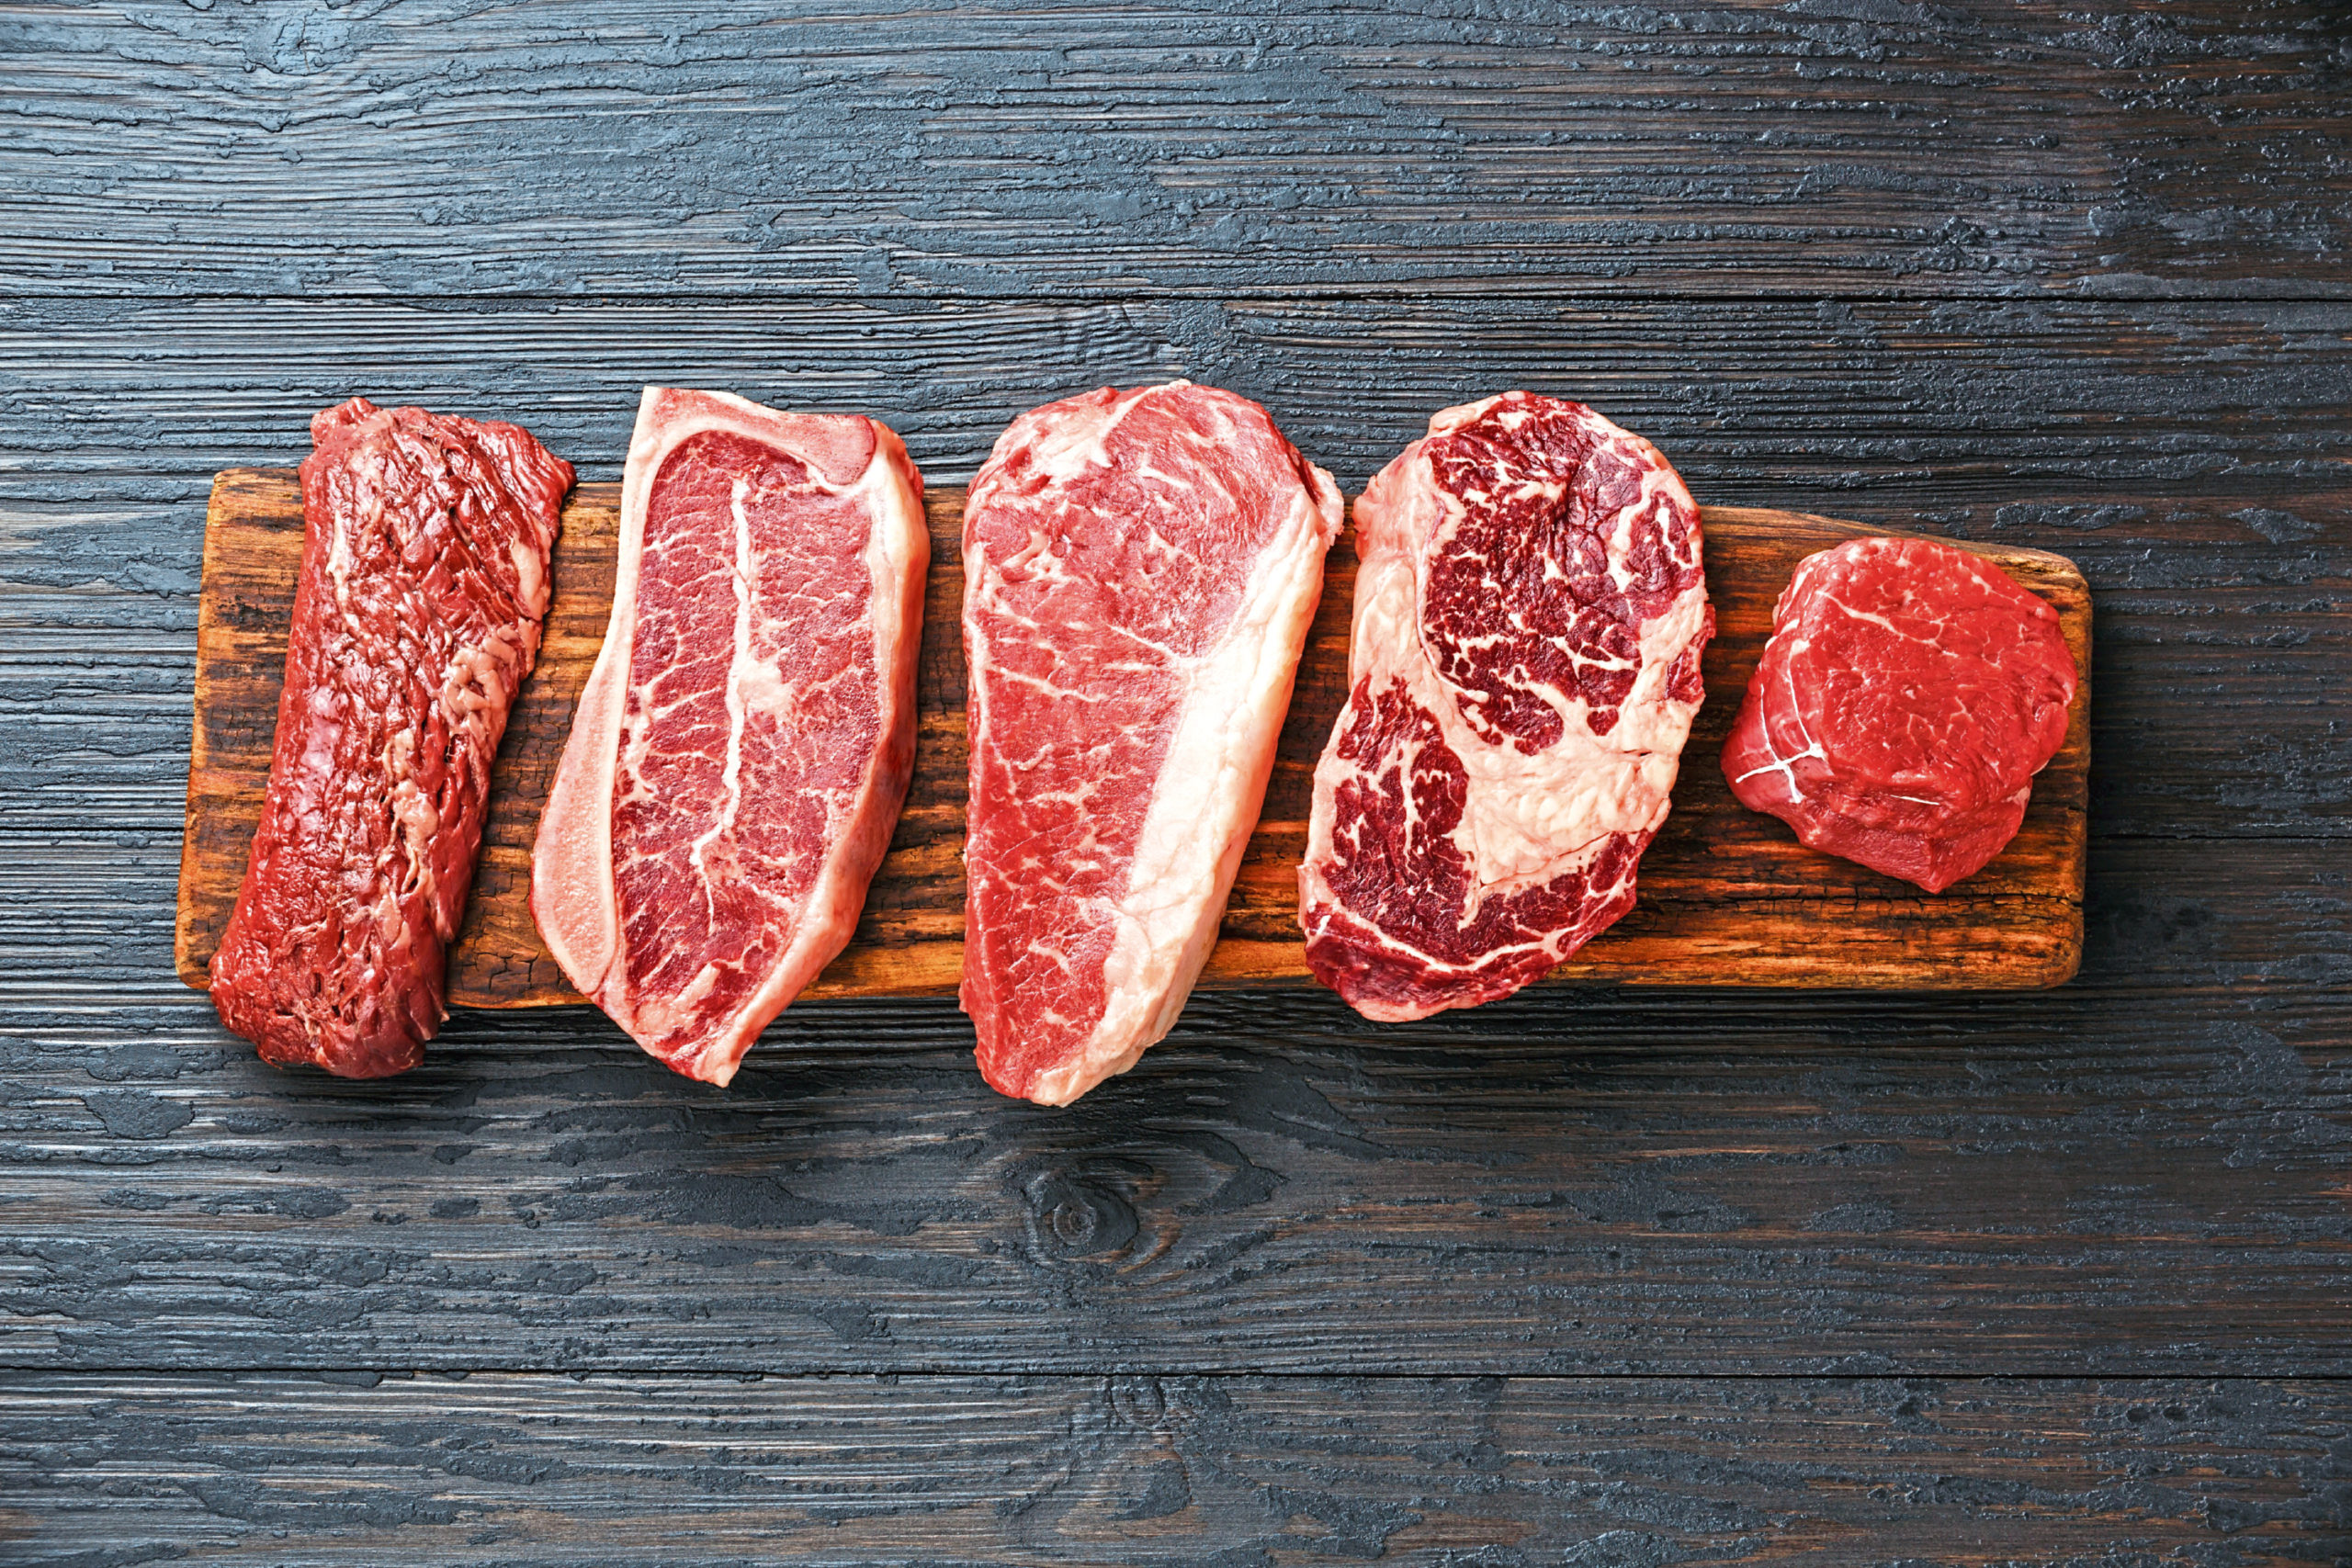 Deidre Bock warned against imports of hormone-treated beef from the US.